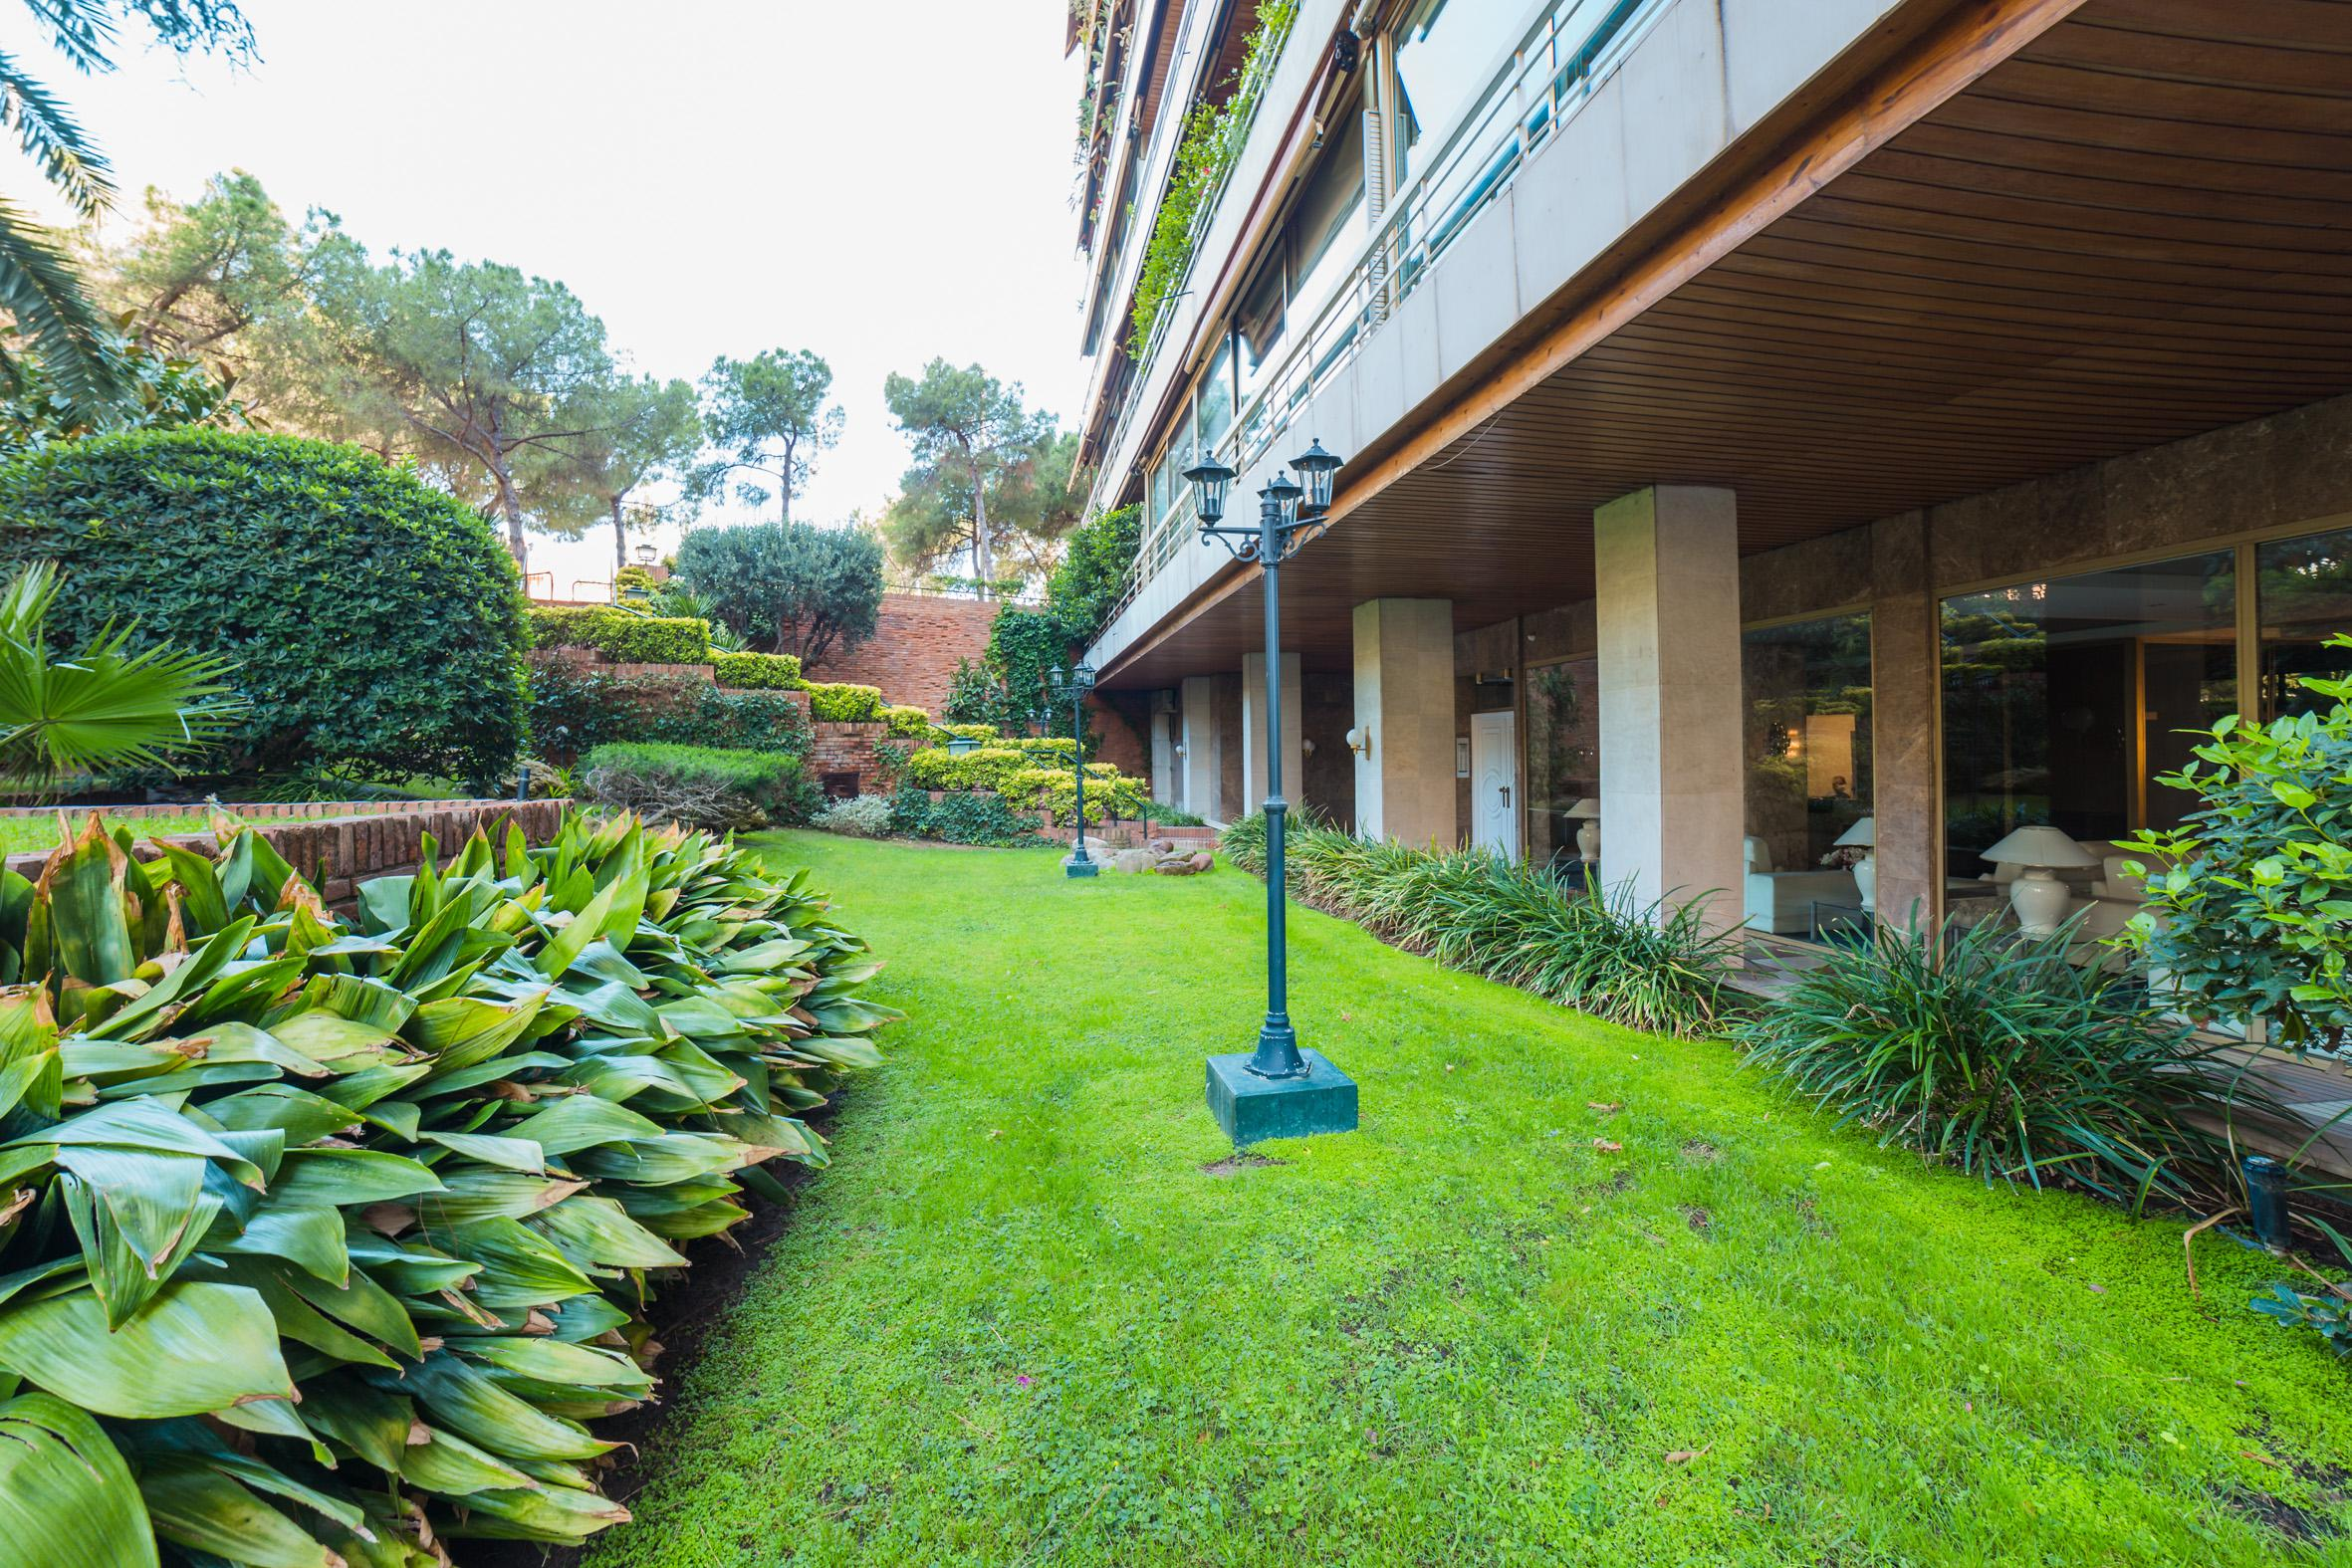 248988 Flat for sale in Les Corts, Les Corts 34